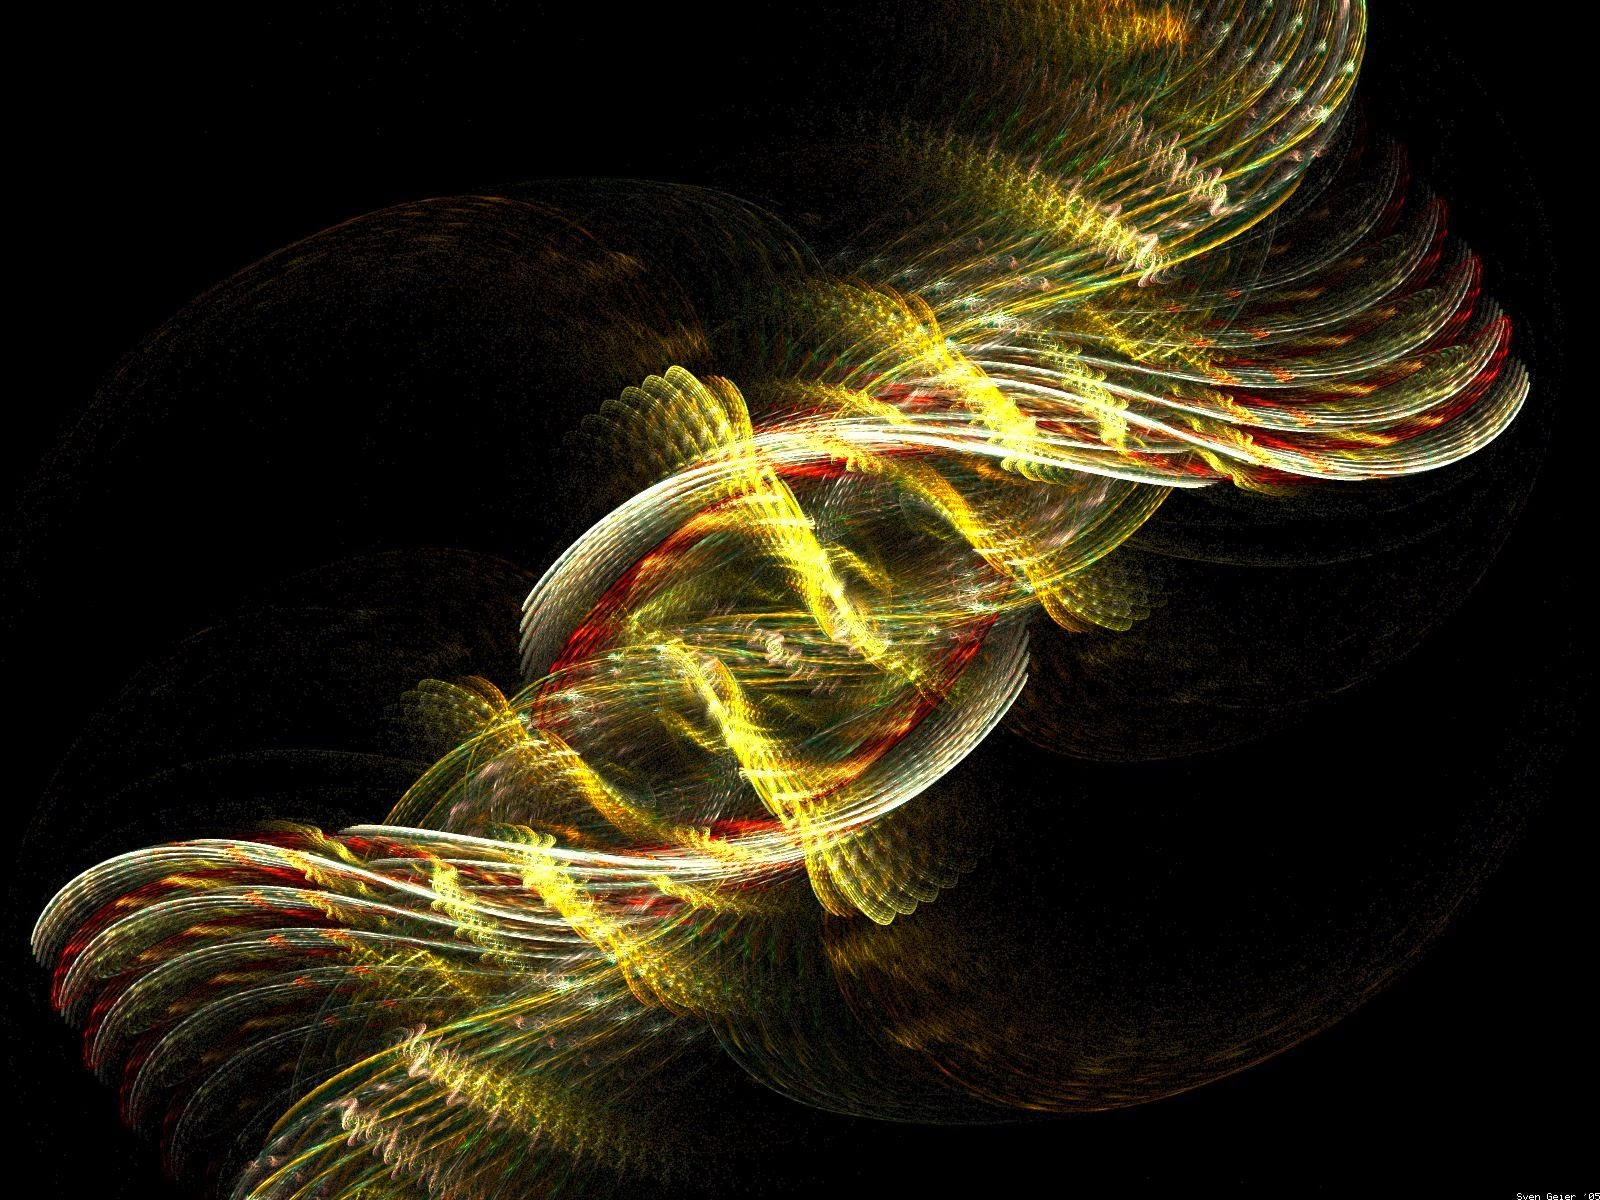 Evolving DNA - expanding - 4 strands